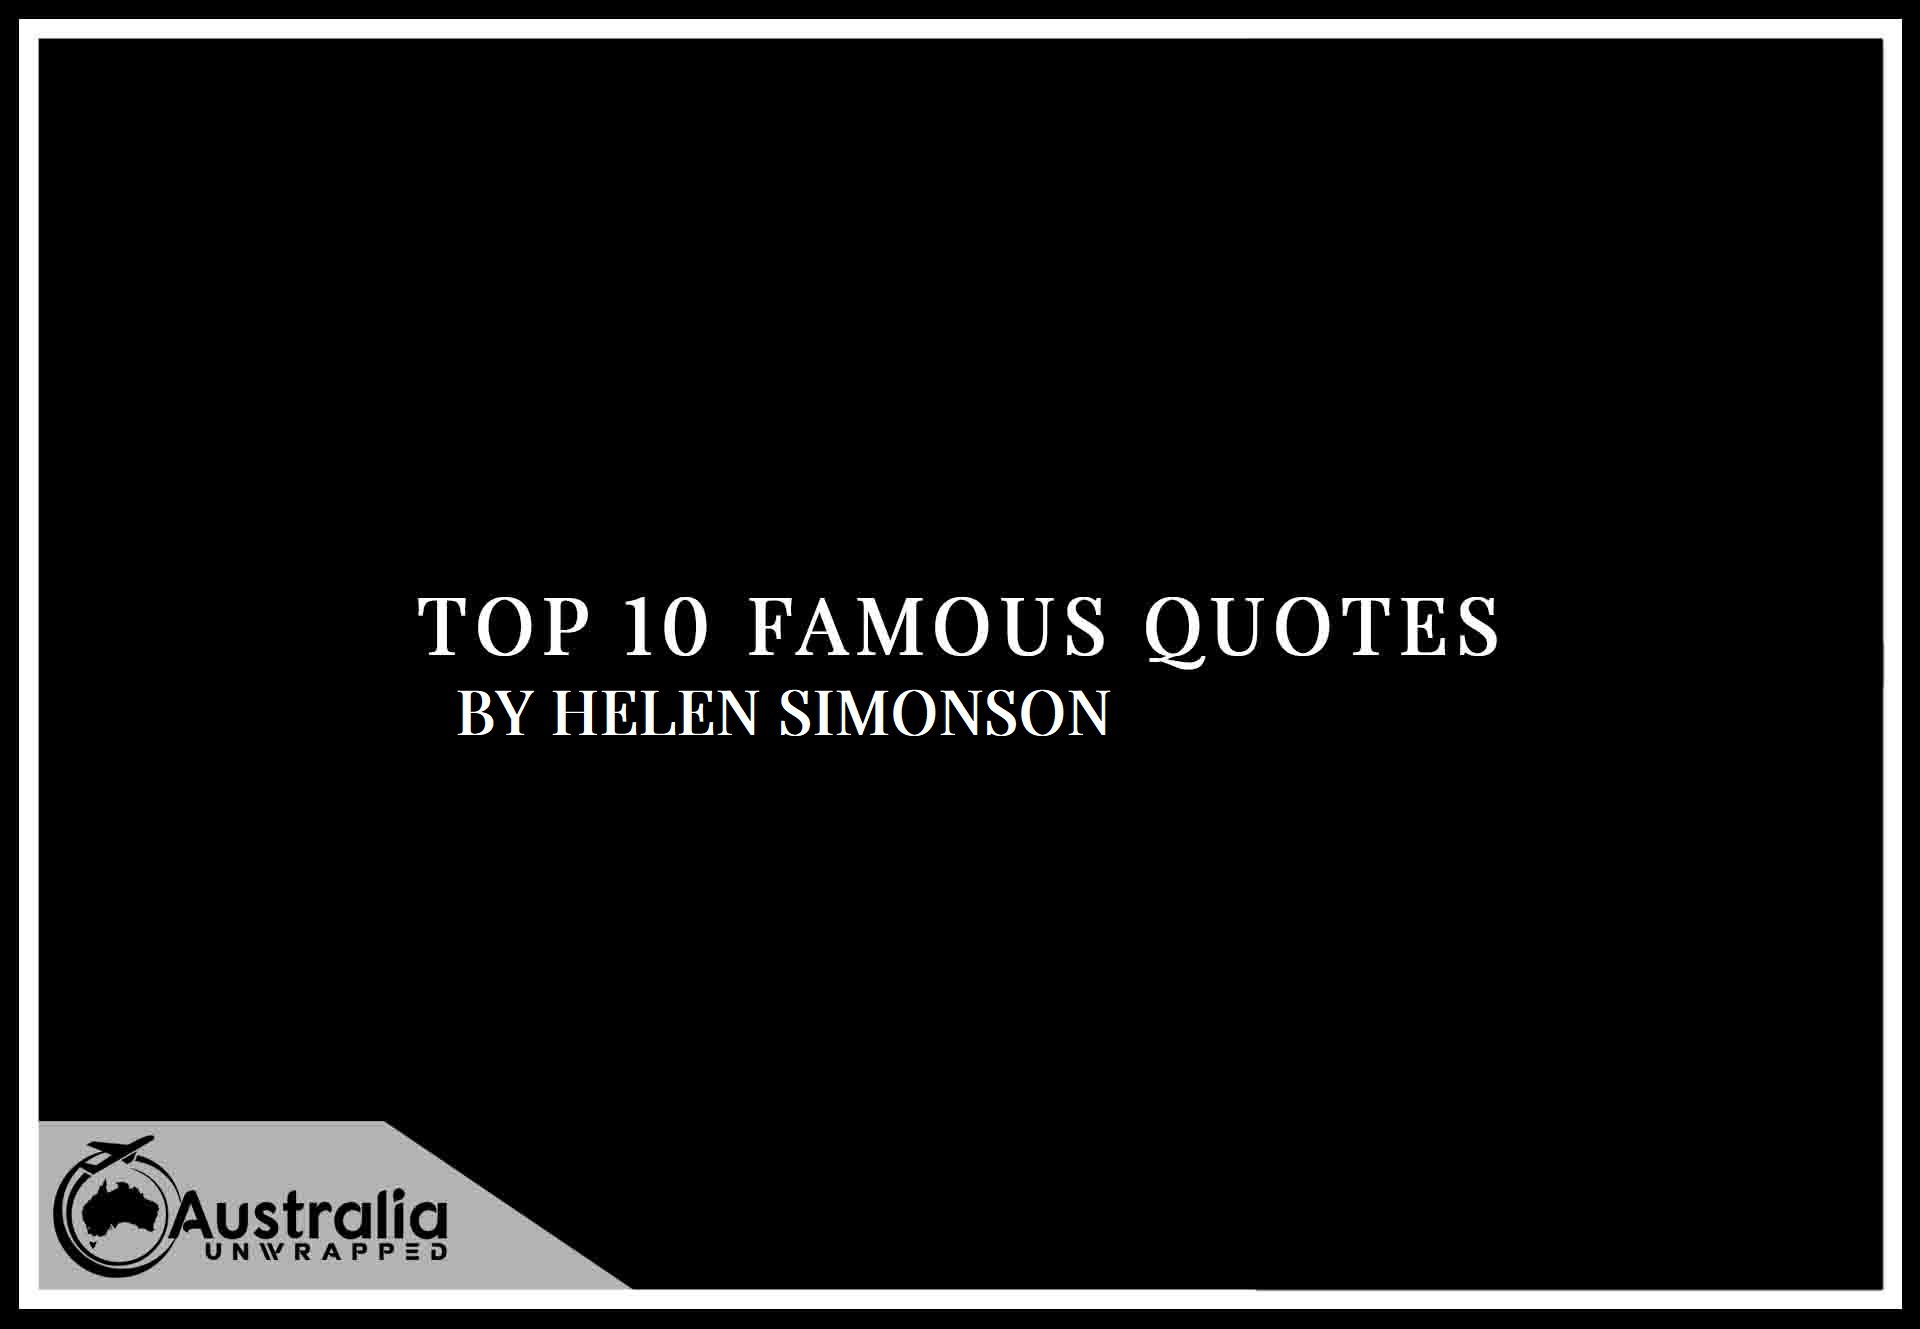 Top 10 Famous Quotes by Author Helen Simonson